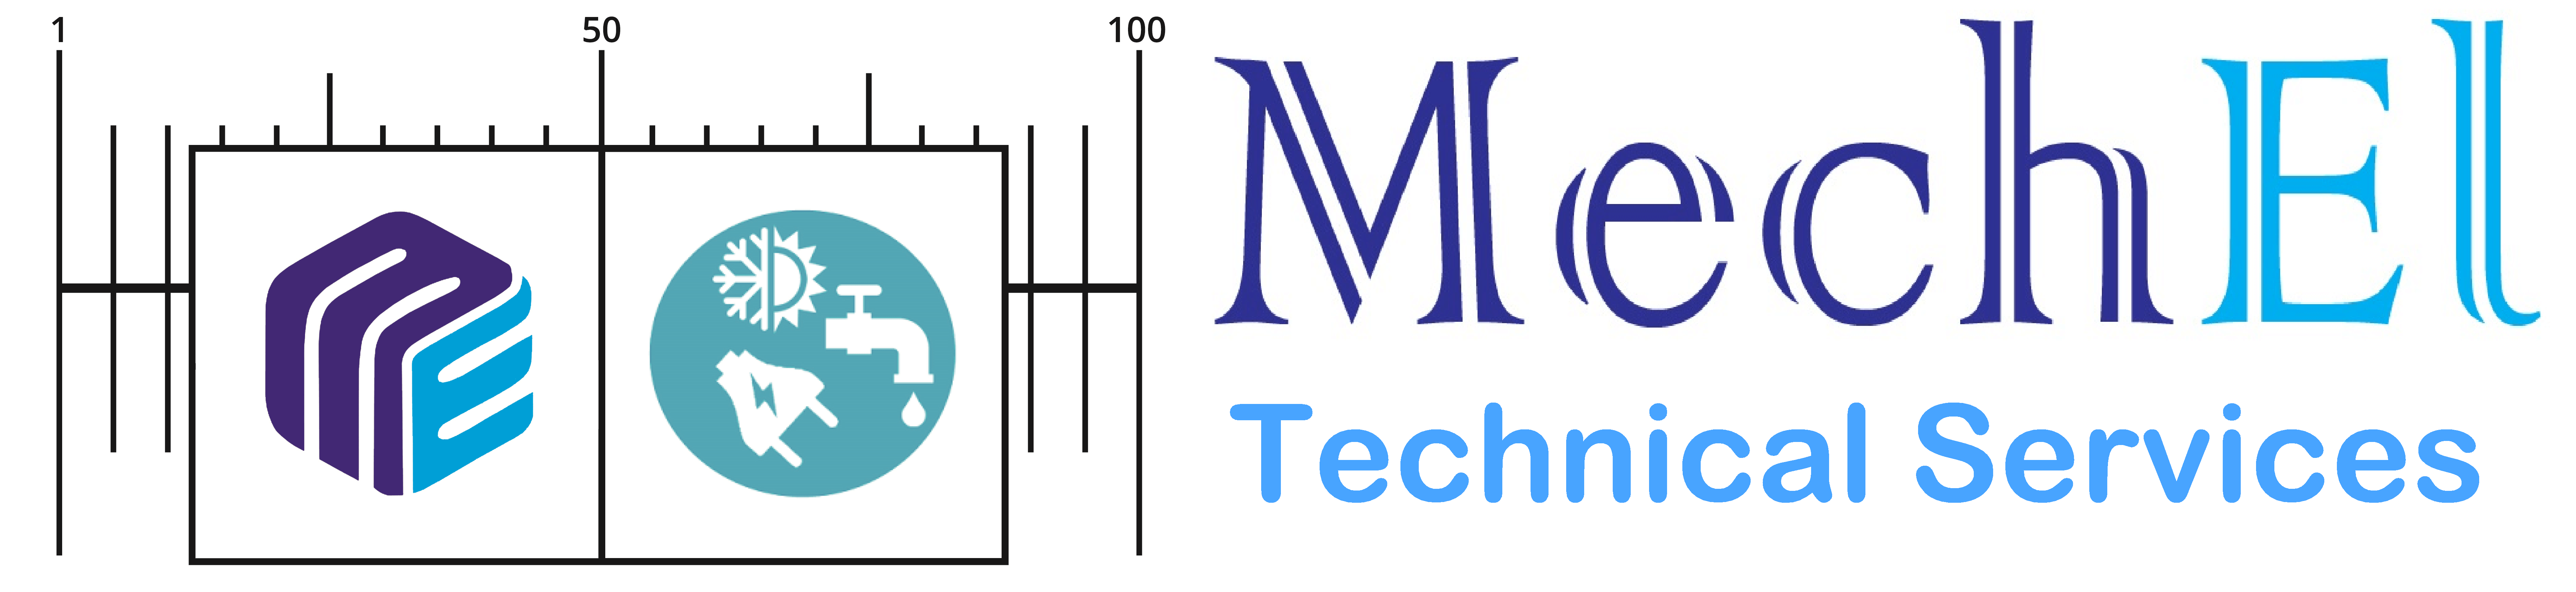 Mechel Technical Services Logo